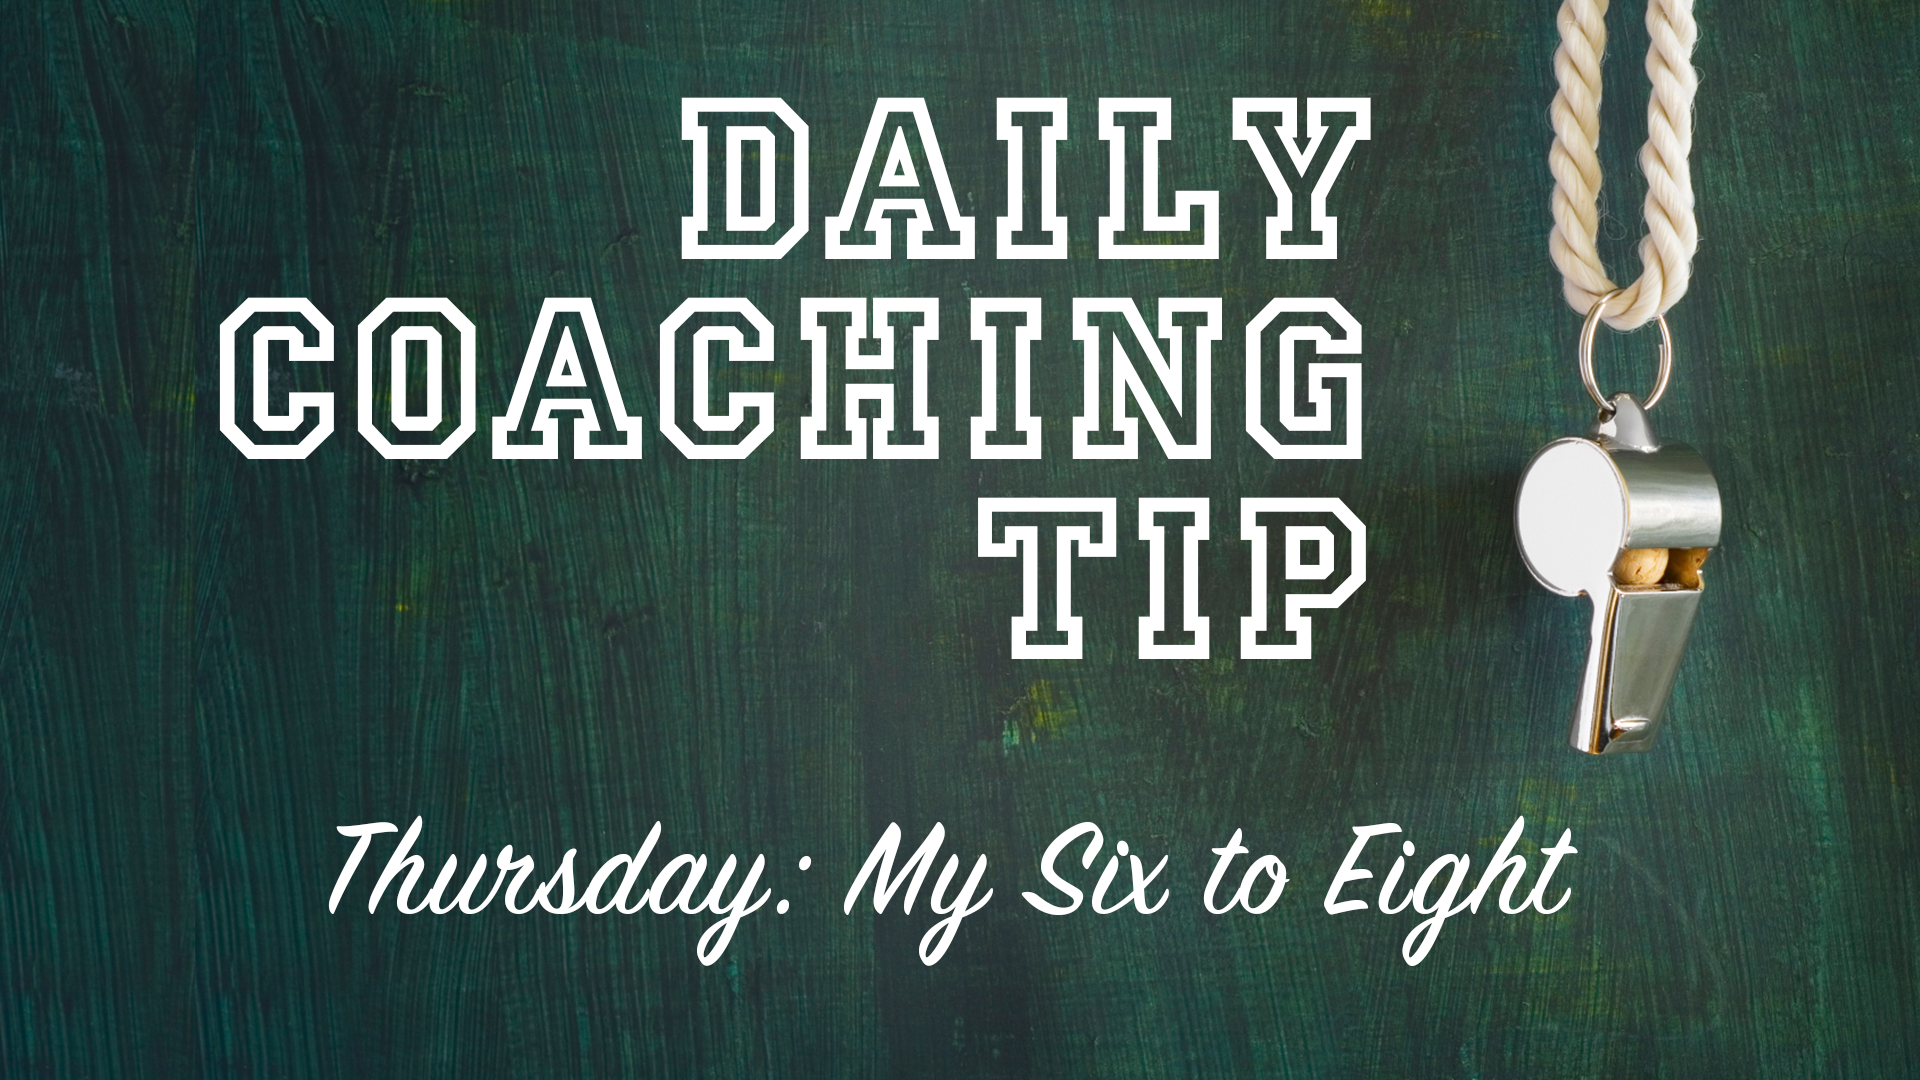 Daily Coaching Tip, Thursday, June 30, 2016